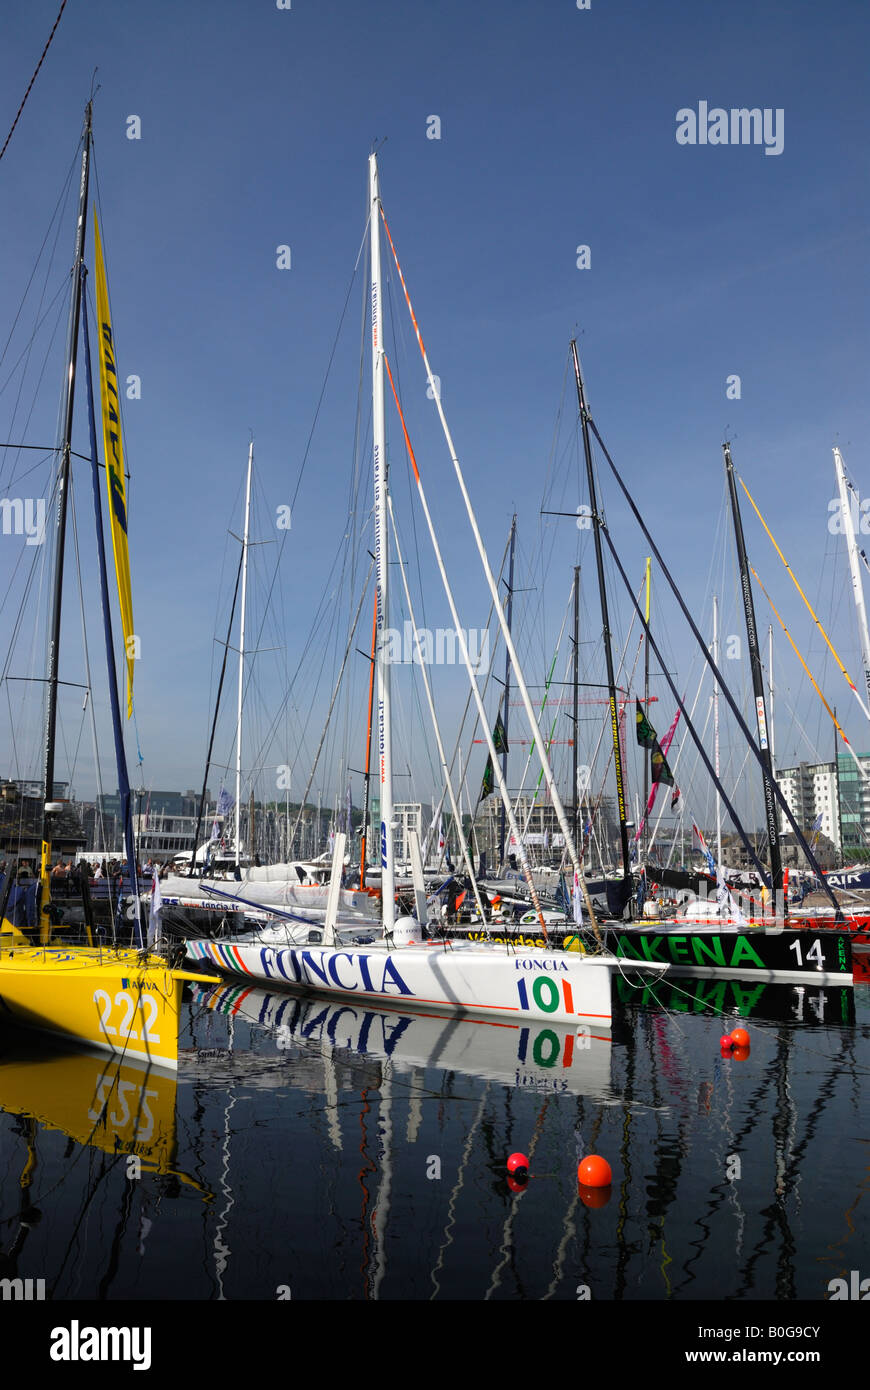 Racing yachts moored in Plymouth, UK, before the start of the 2008 Transat transatlantic race Stock Photo